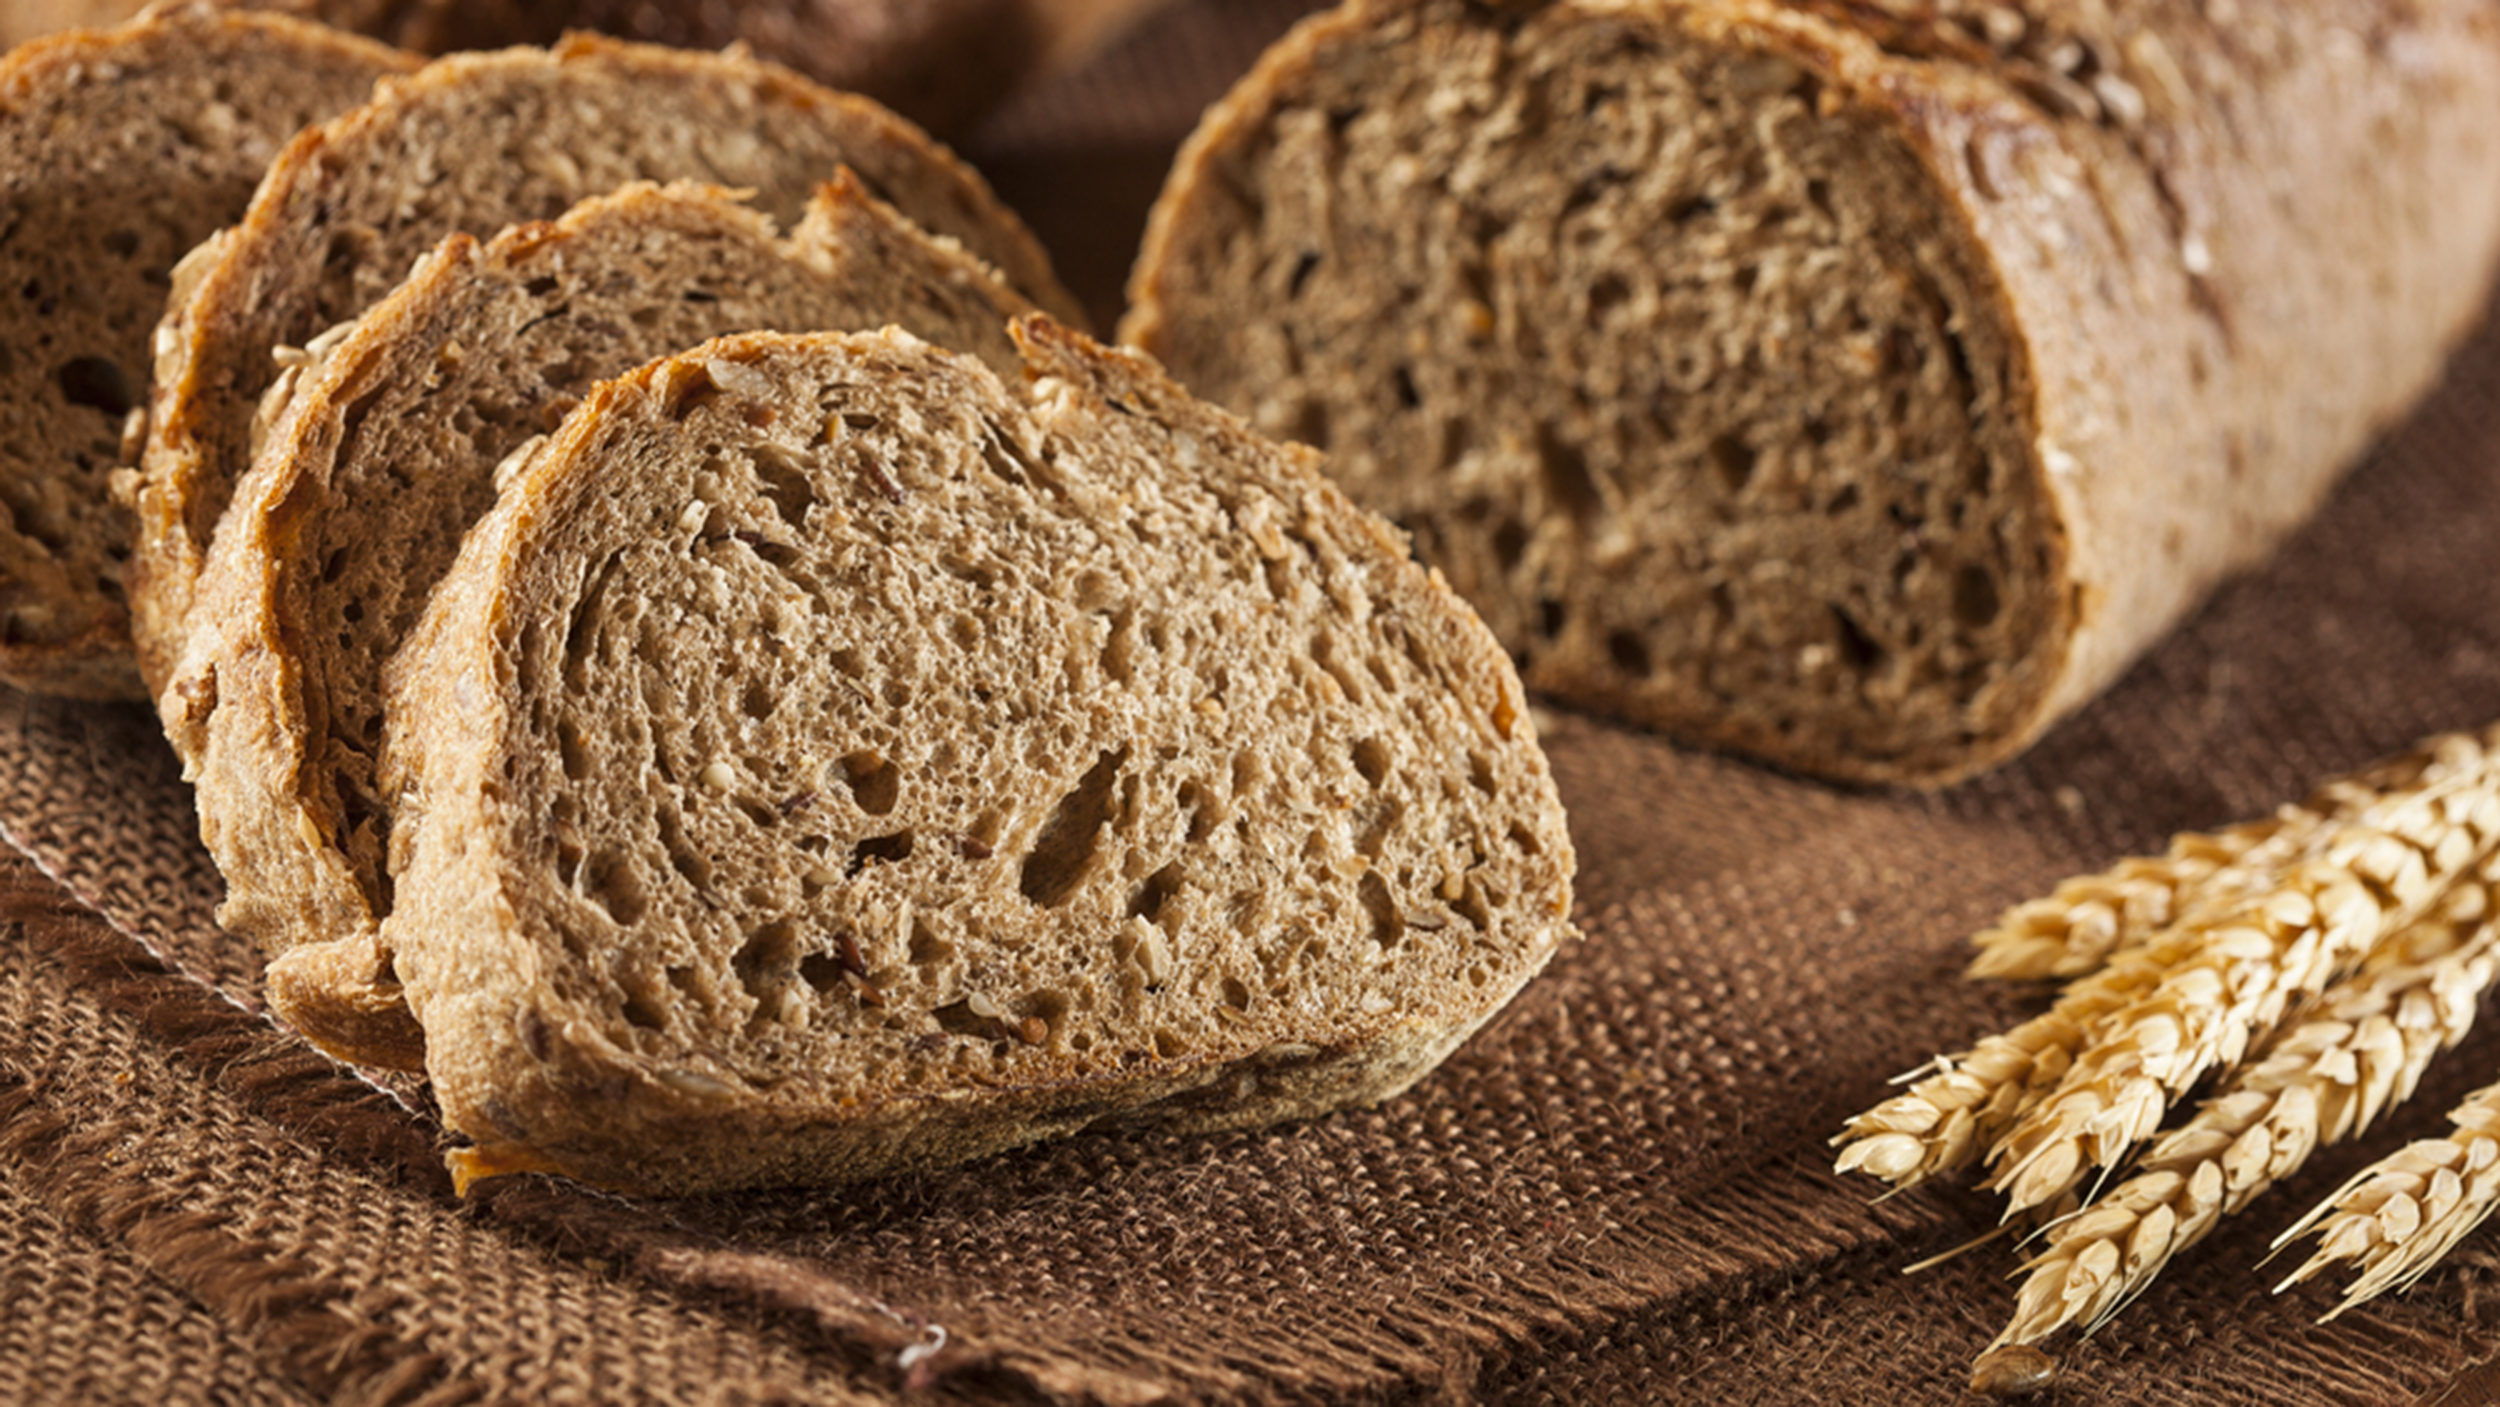 Whole Wheat Foods Council